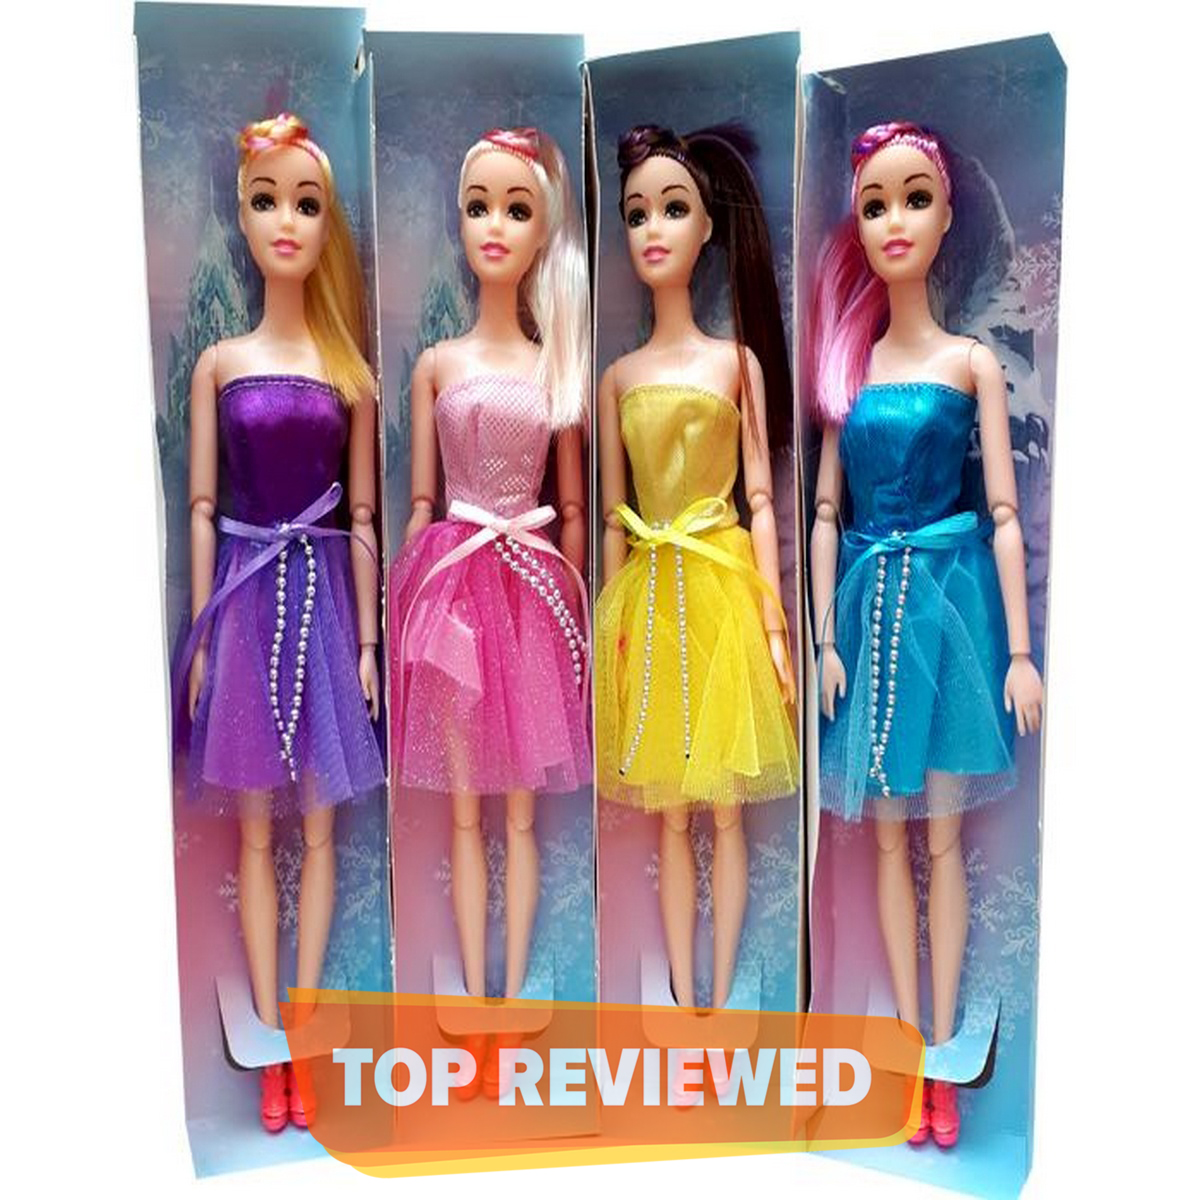 1 Piece of beautiful 11 Inch Bendable Doll with Elbow and Knees Bending in Multi Colors send as per availability